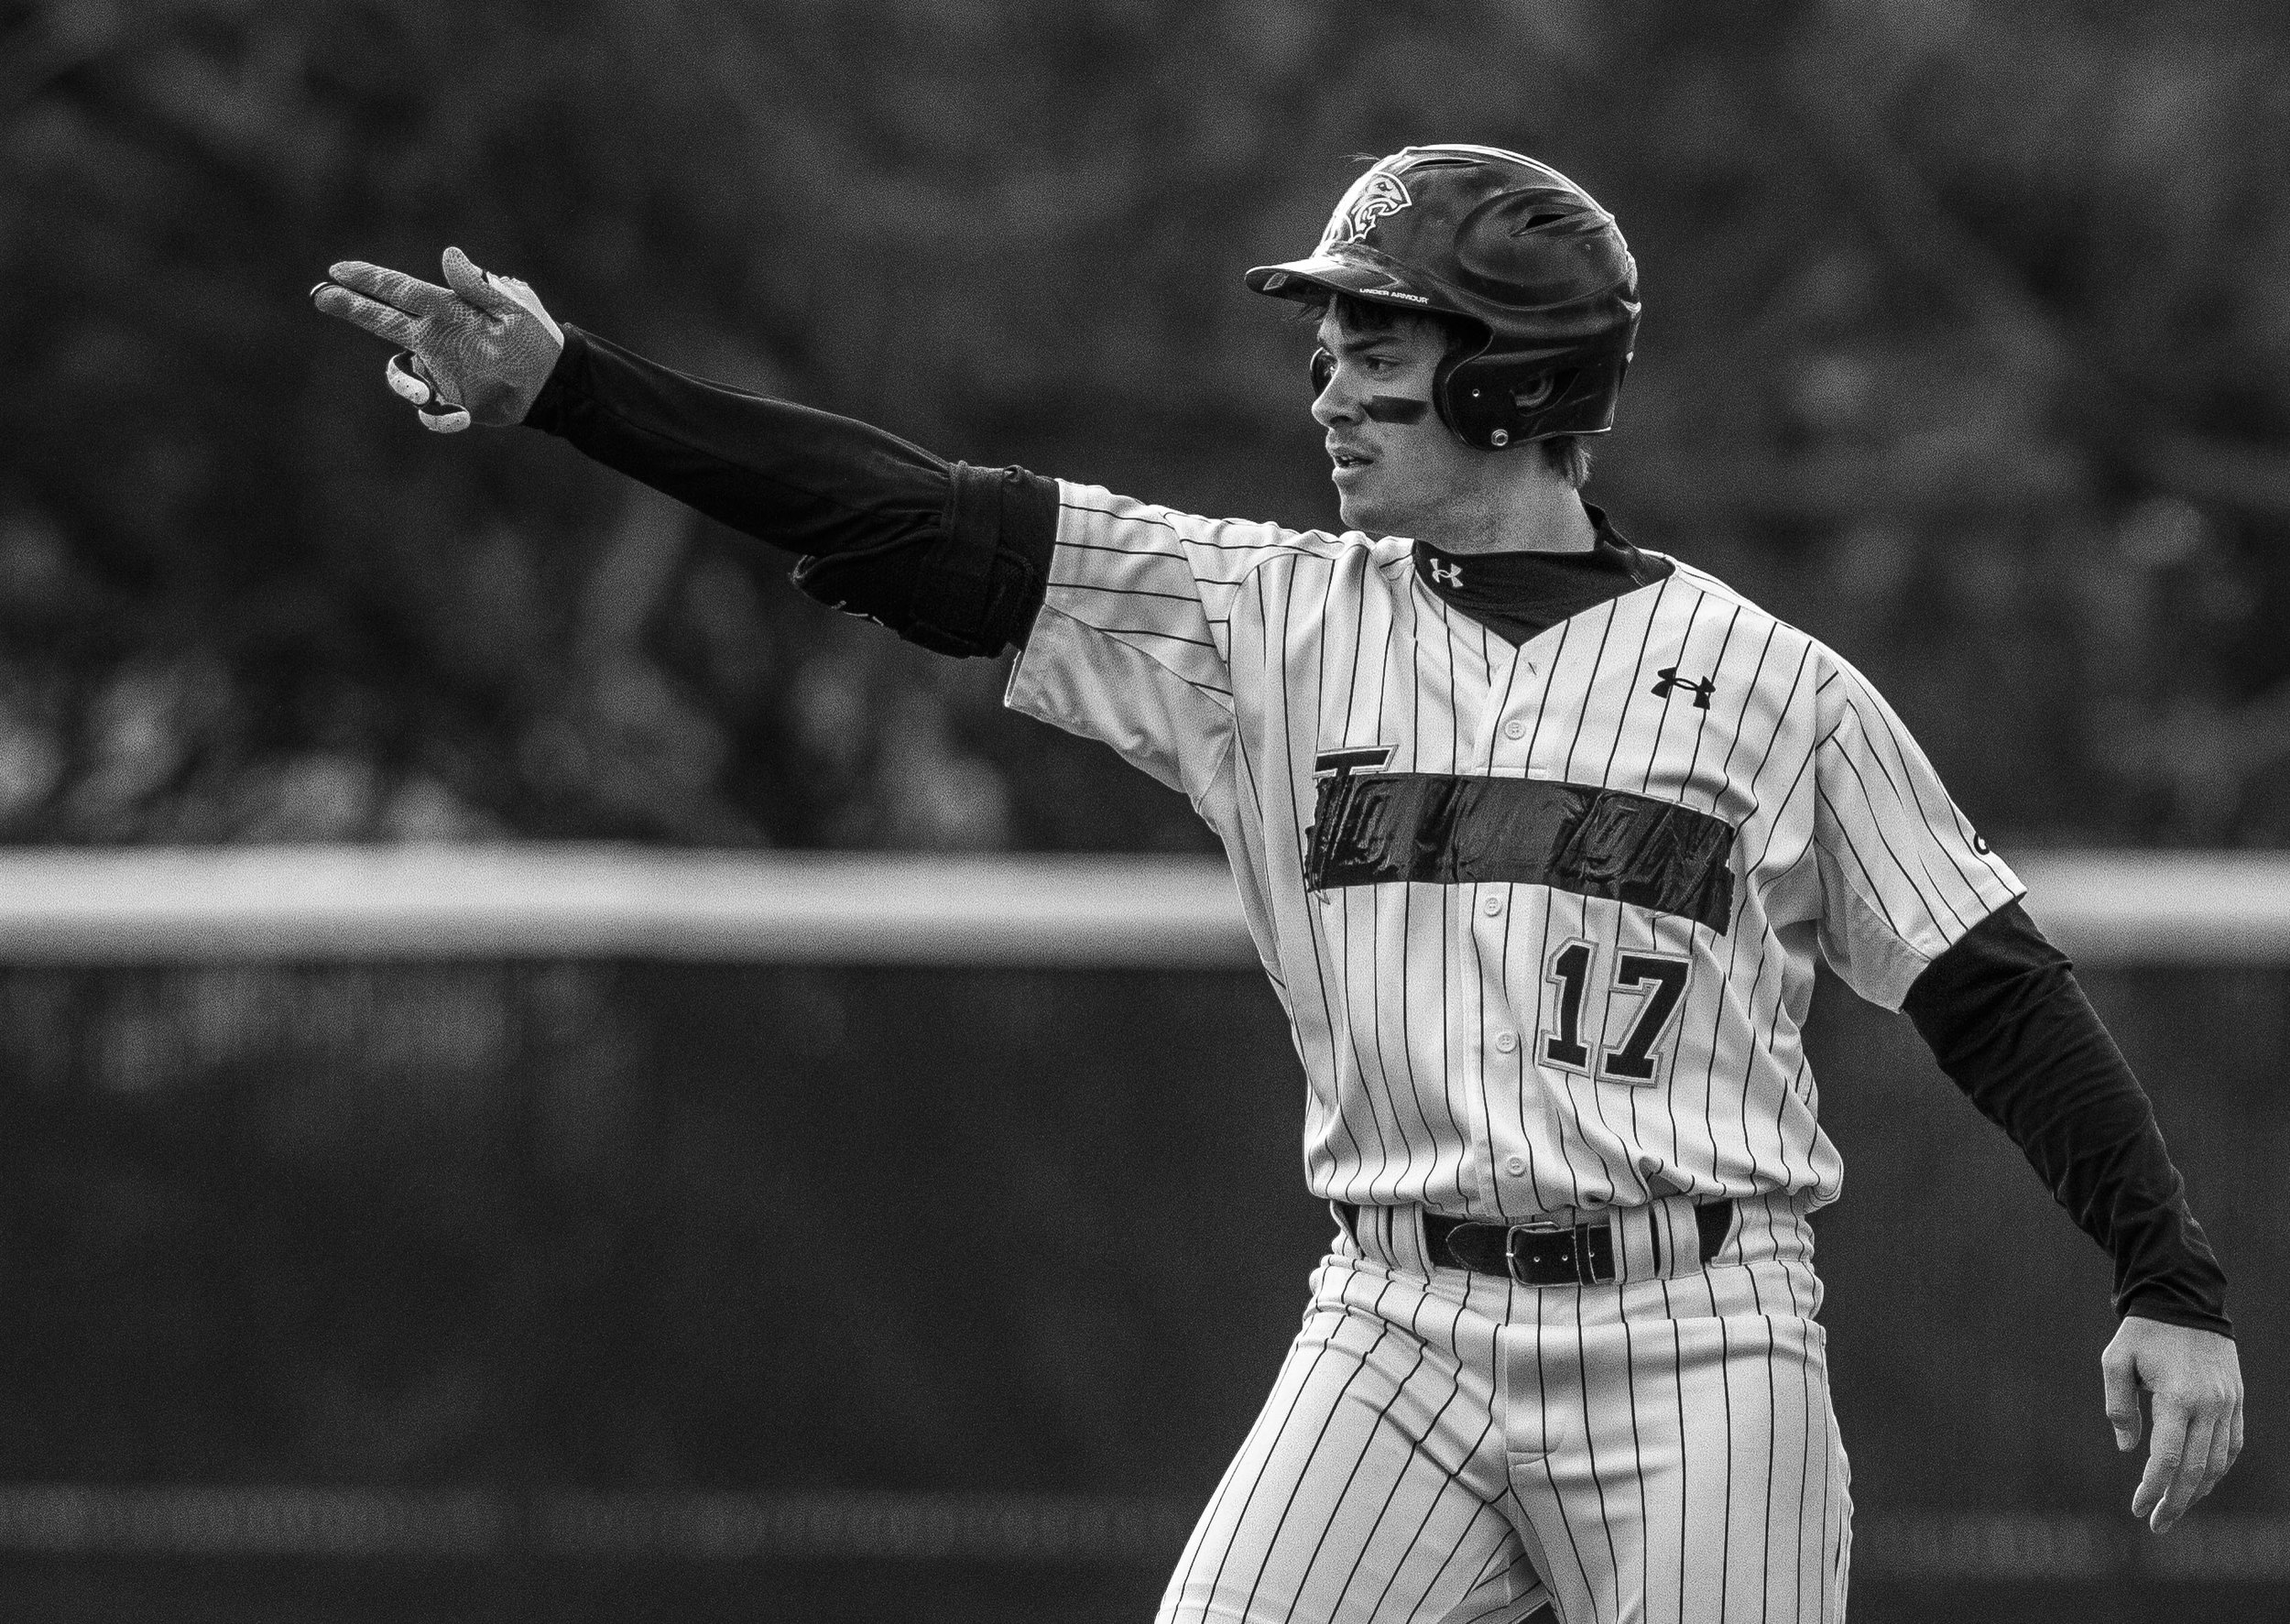 """Towson University outfielder Kurt Wertz signals to his team during their first home game on March 8, 2013 after receiving news that they will not have a 2014 season in Baltimore, Md. The entire team covered """"Towson"""" on their jerseys in protest of the recent decision."""